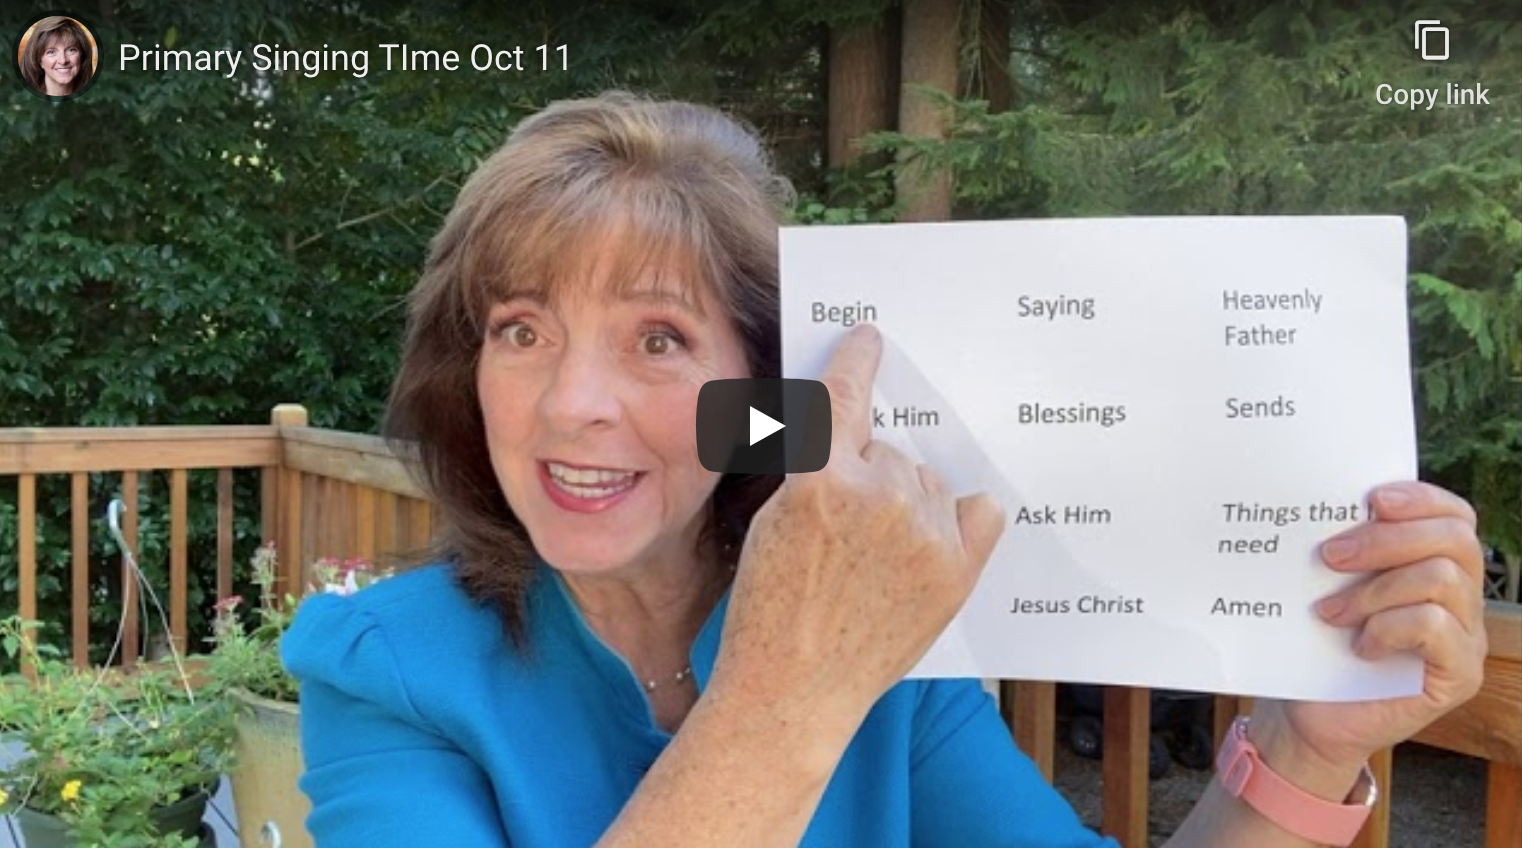 Primary Singing Time – Oct. 11, Full Video